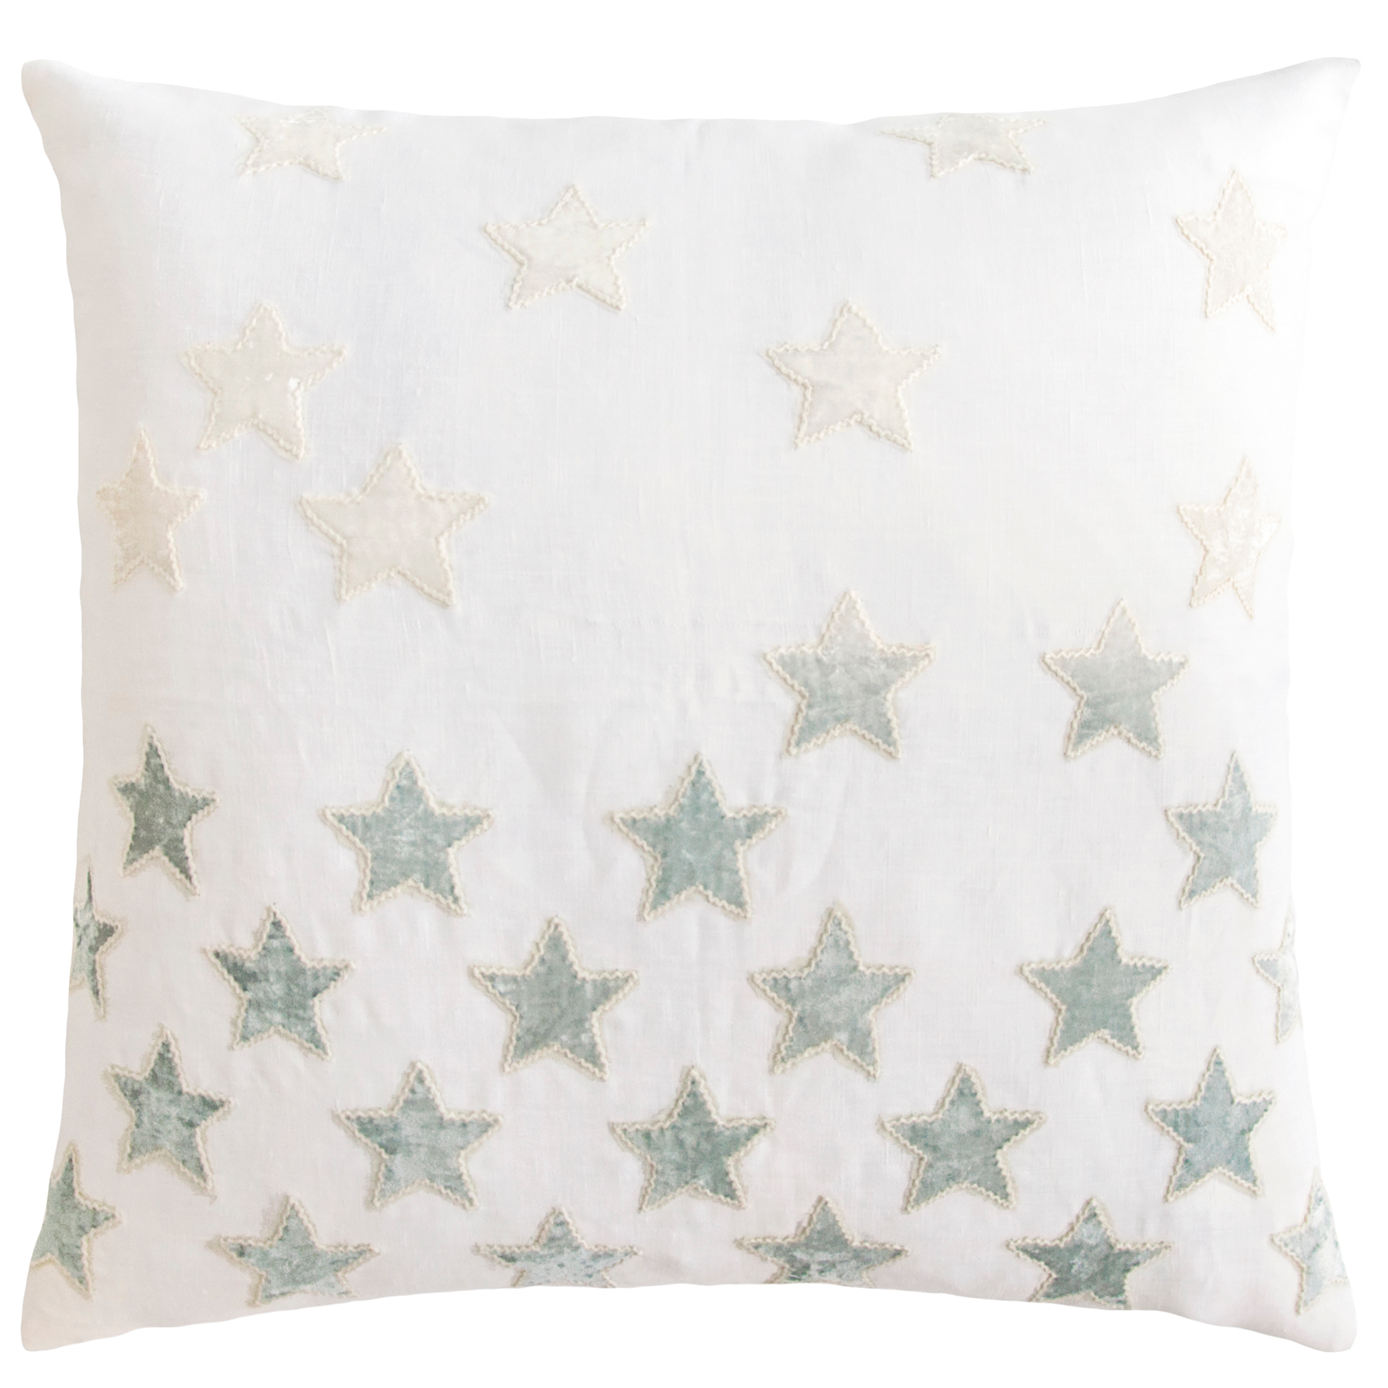 Kevin O'Brien Studio Stars Appliqued Linen Throw Pillow